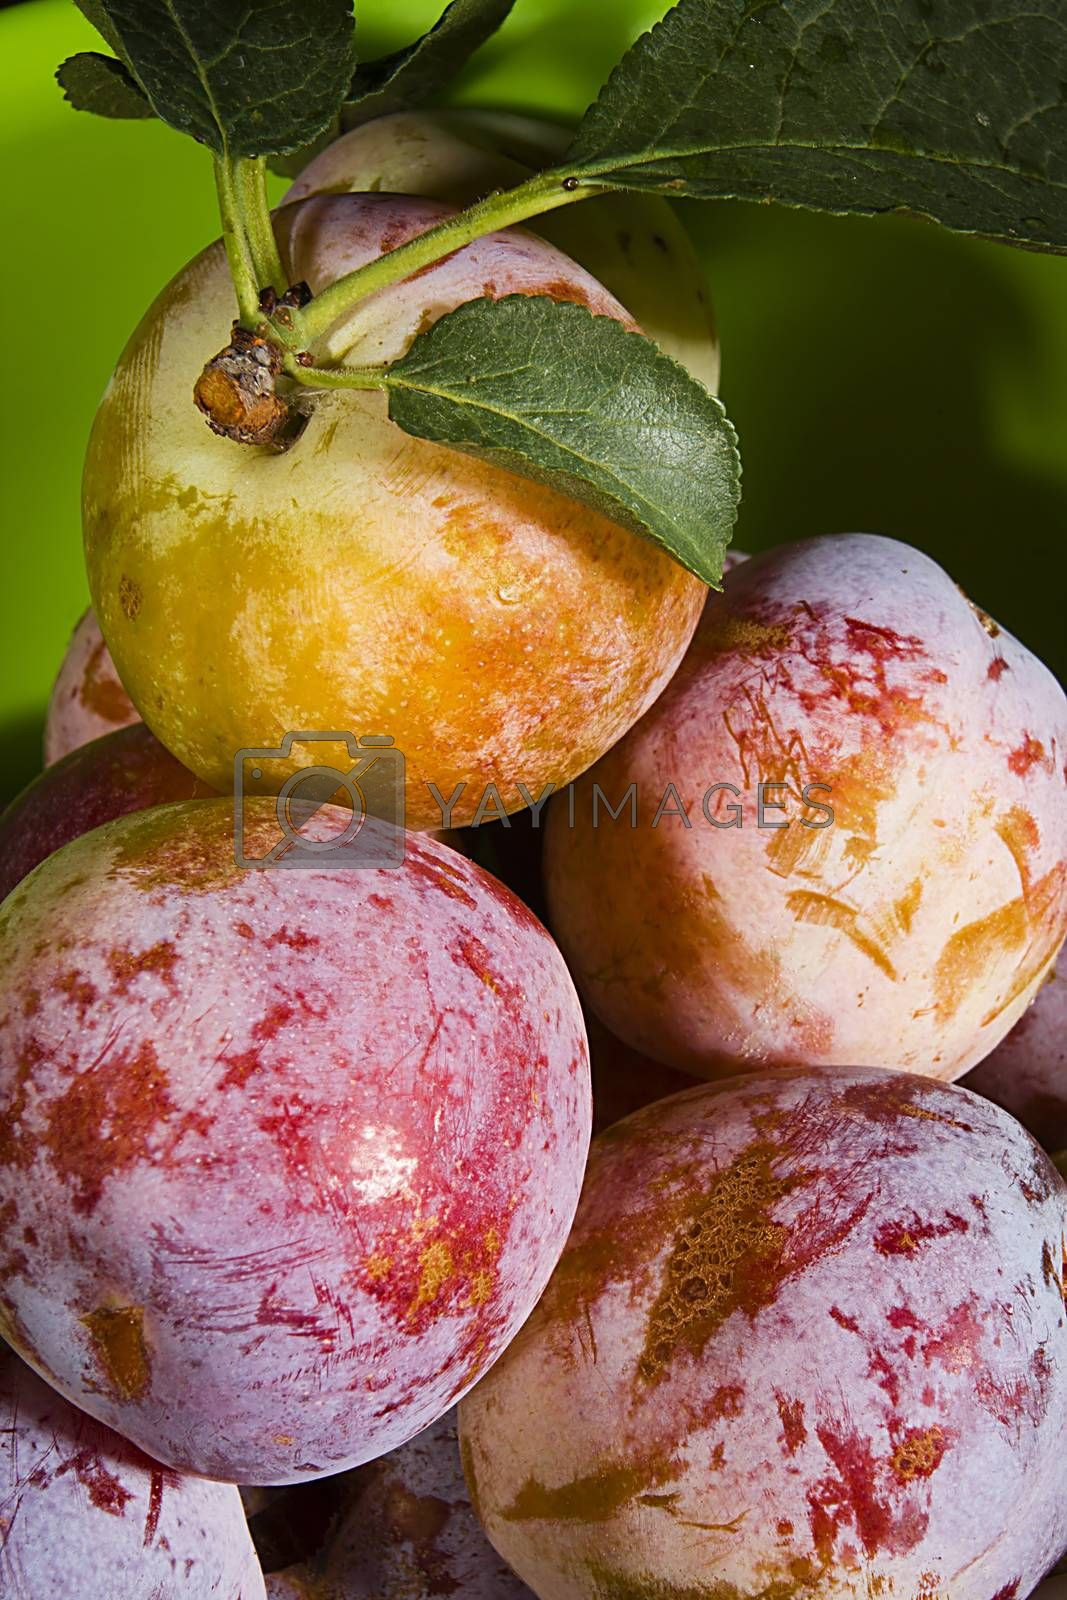 Many ripe plums on a green background